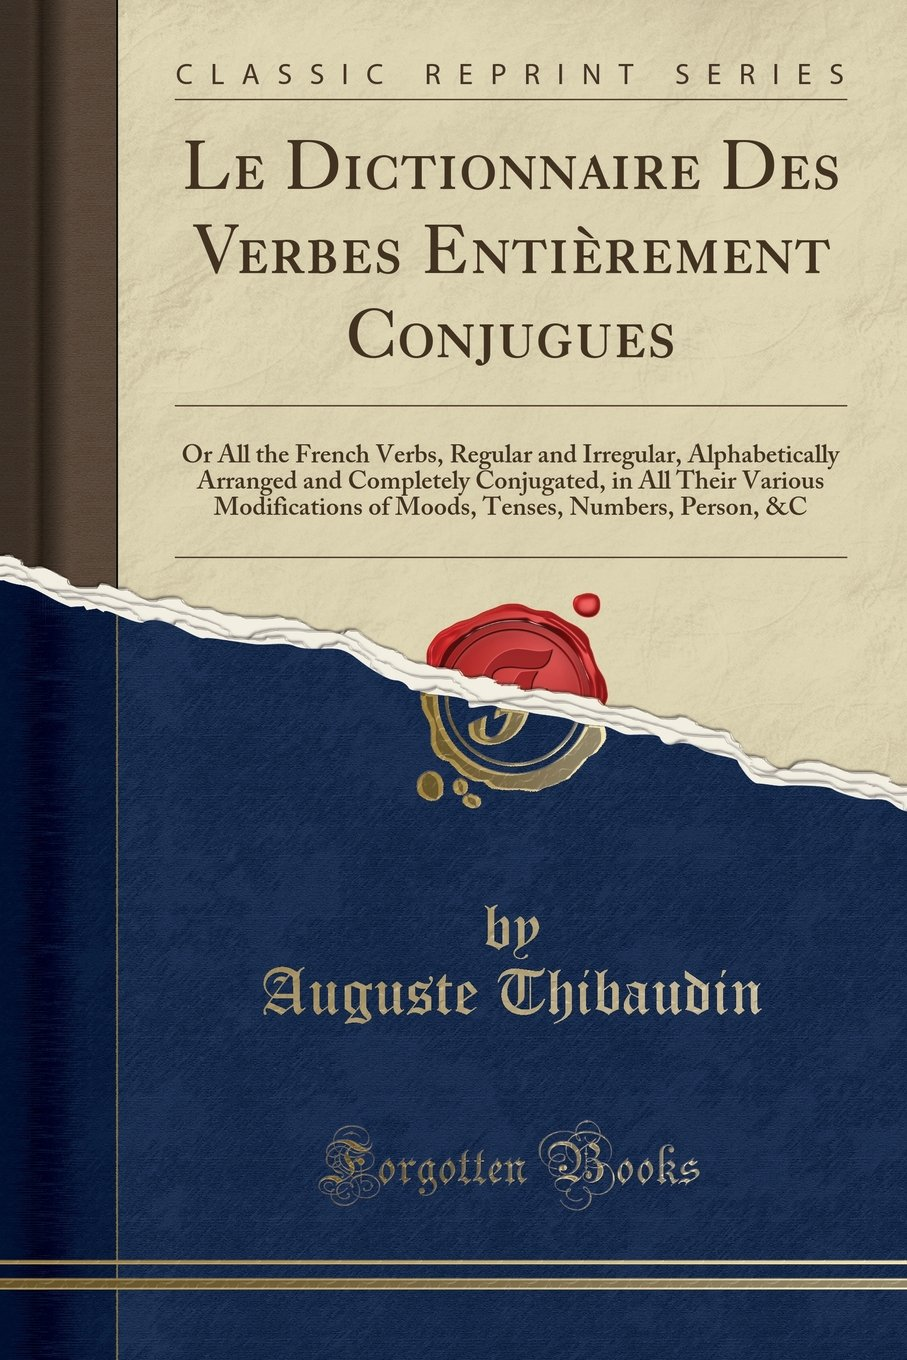 Read Online Le Dictionnaire Des Verbes Entièrement Conjuguès: Or All the French Verbs, Regular and Irregular, Alphabetically Arranged and Completely Conjugated, ... Numbers, Persons, &C (Classic Reprint) PDF